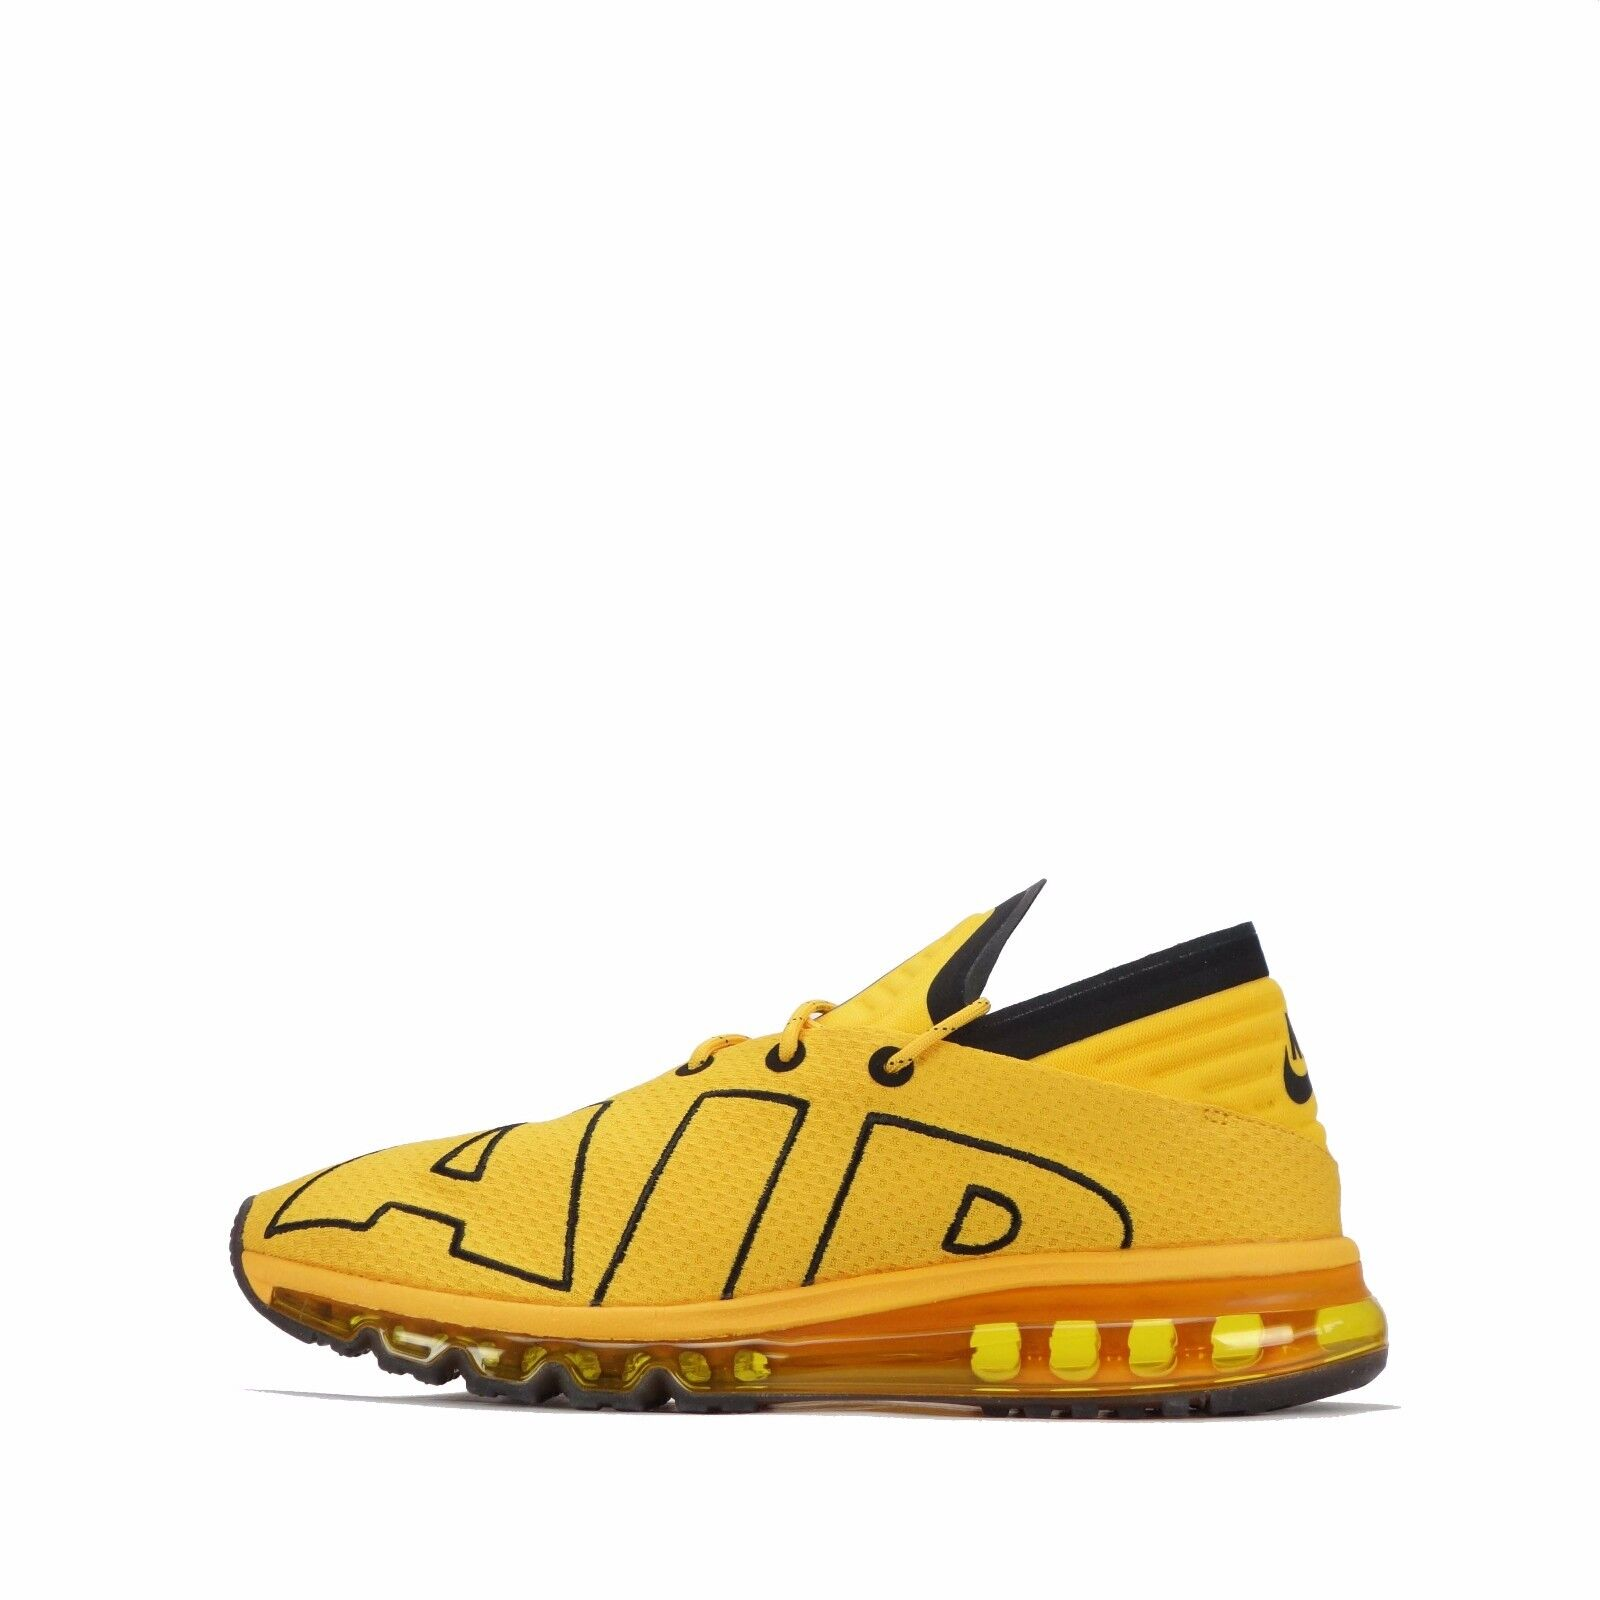 Nike Air Max Flair Men's Shoes University Gold/Black